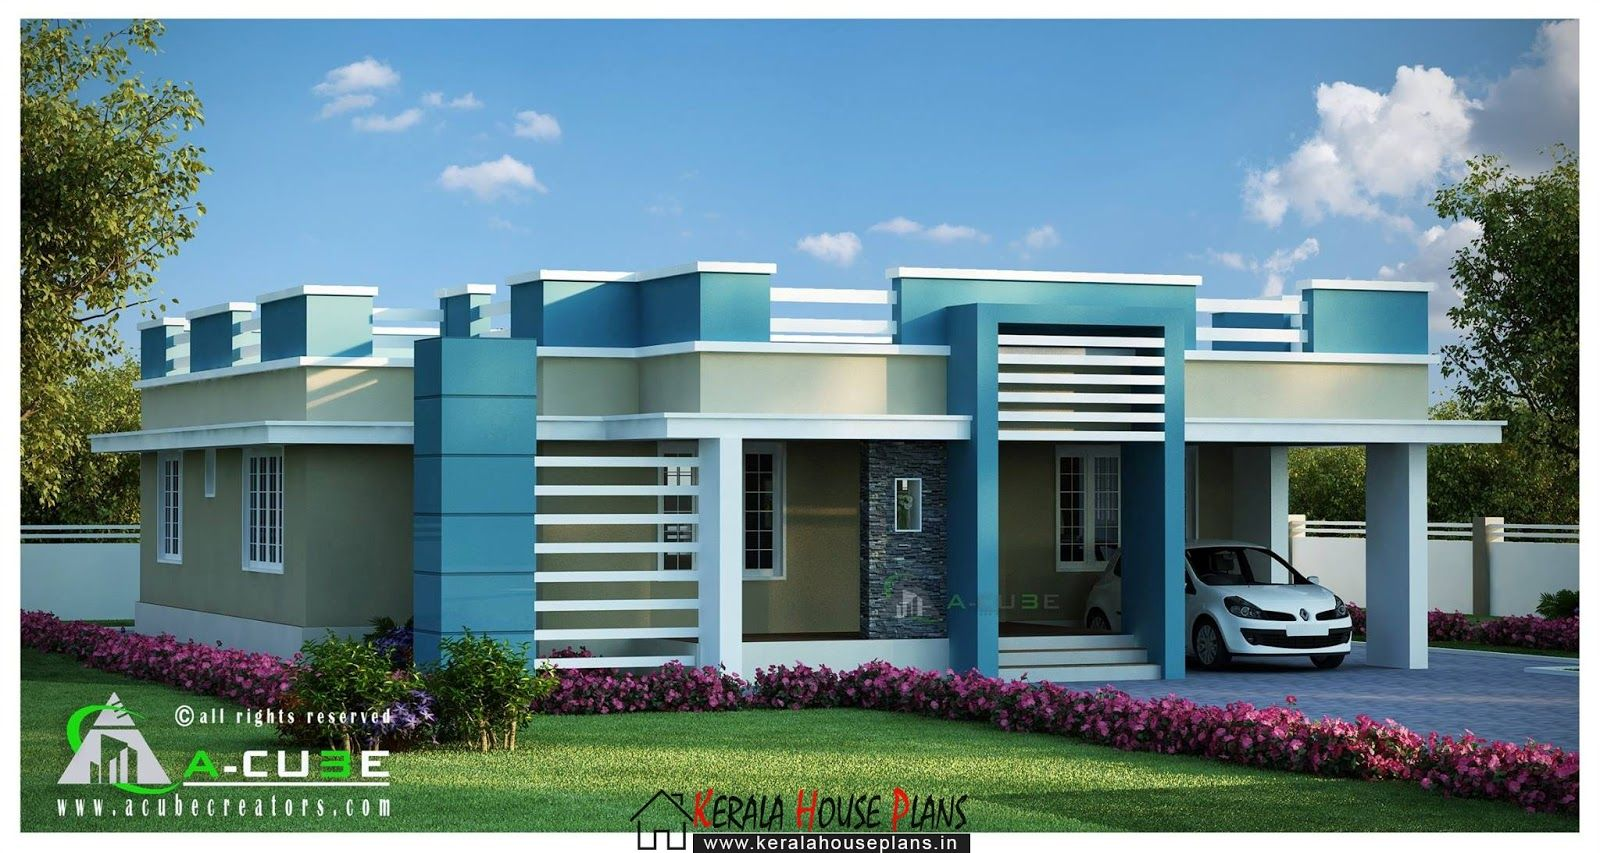 Beautiful kerala single floo rcontemporary house design also gk in rh pinterest